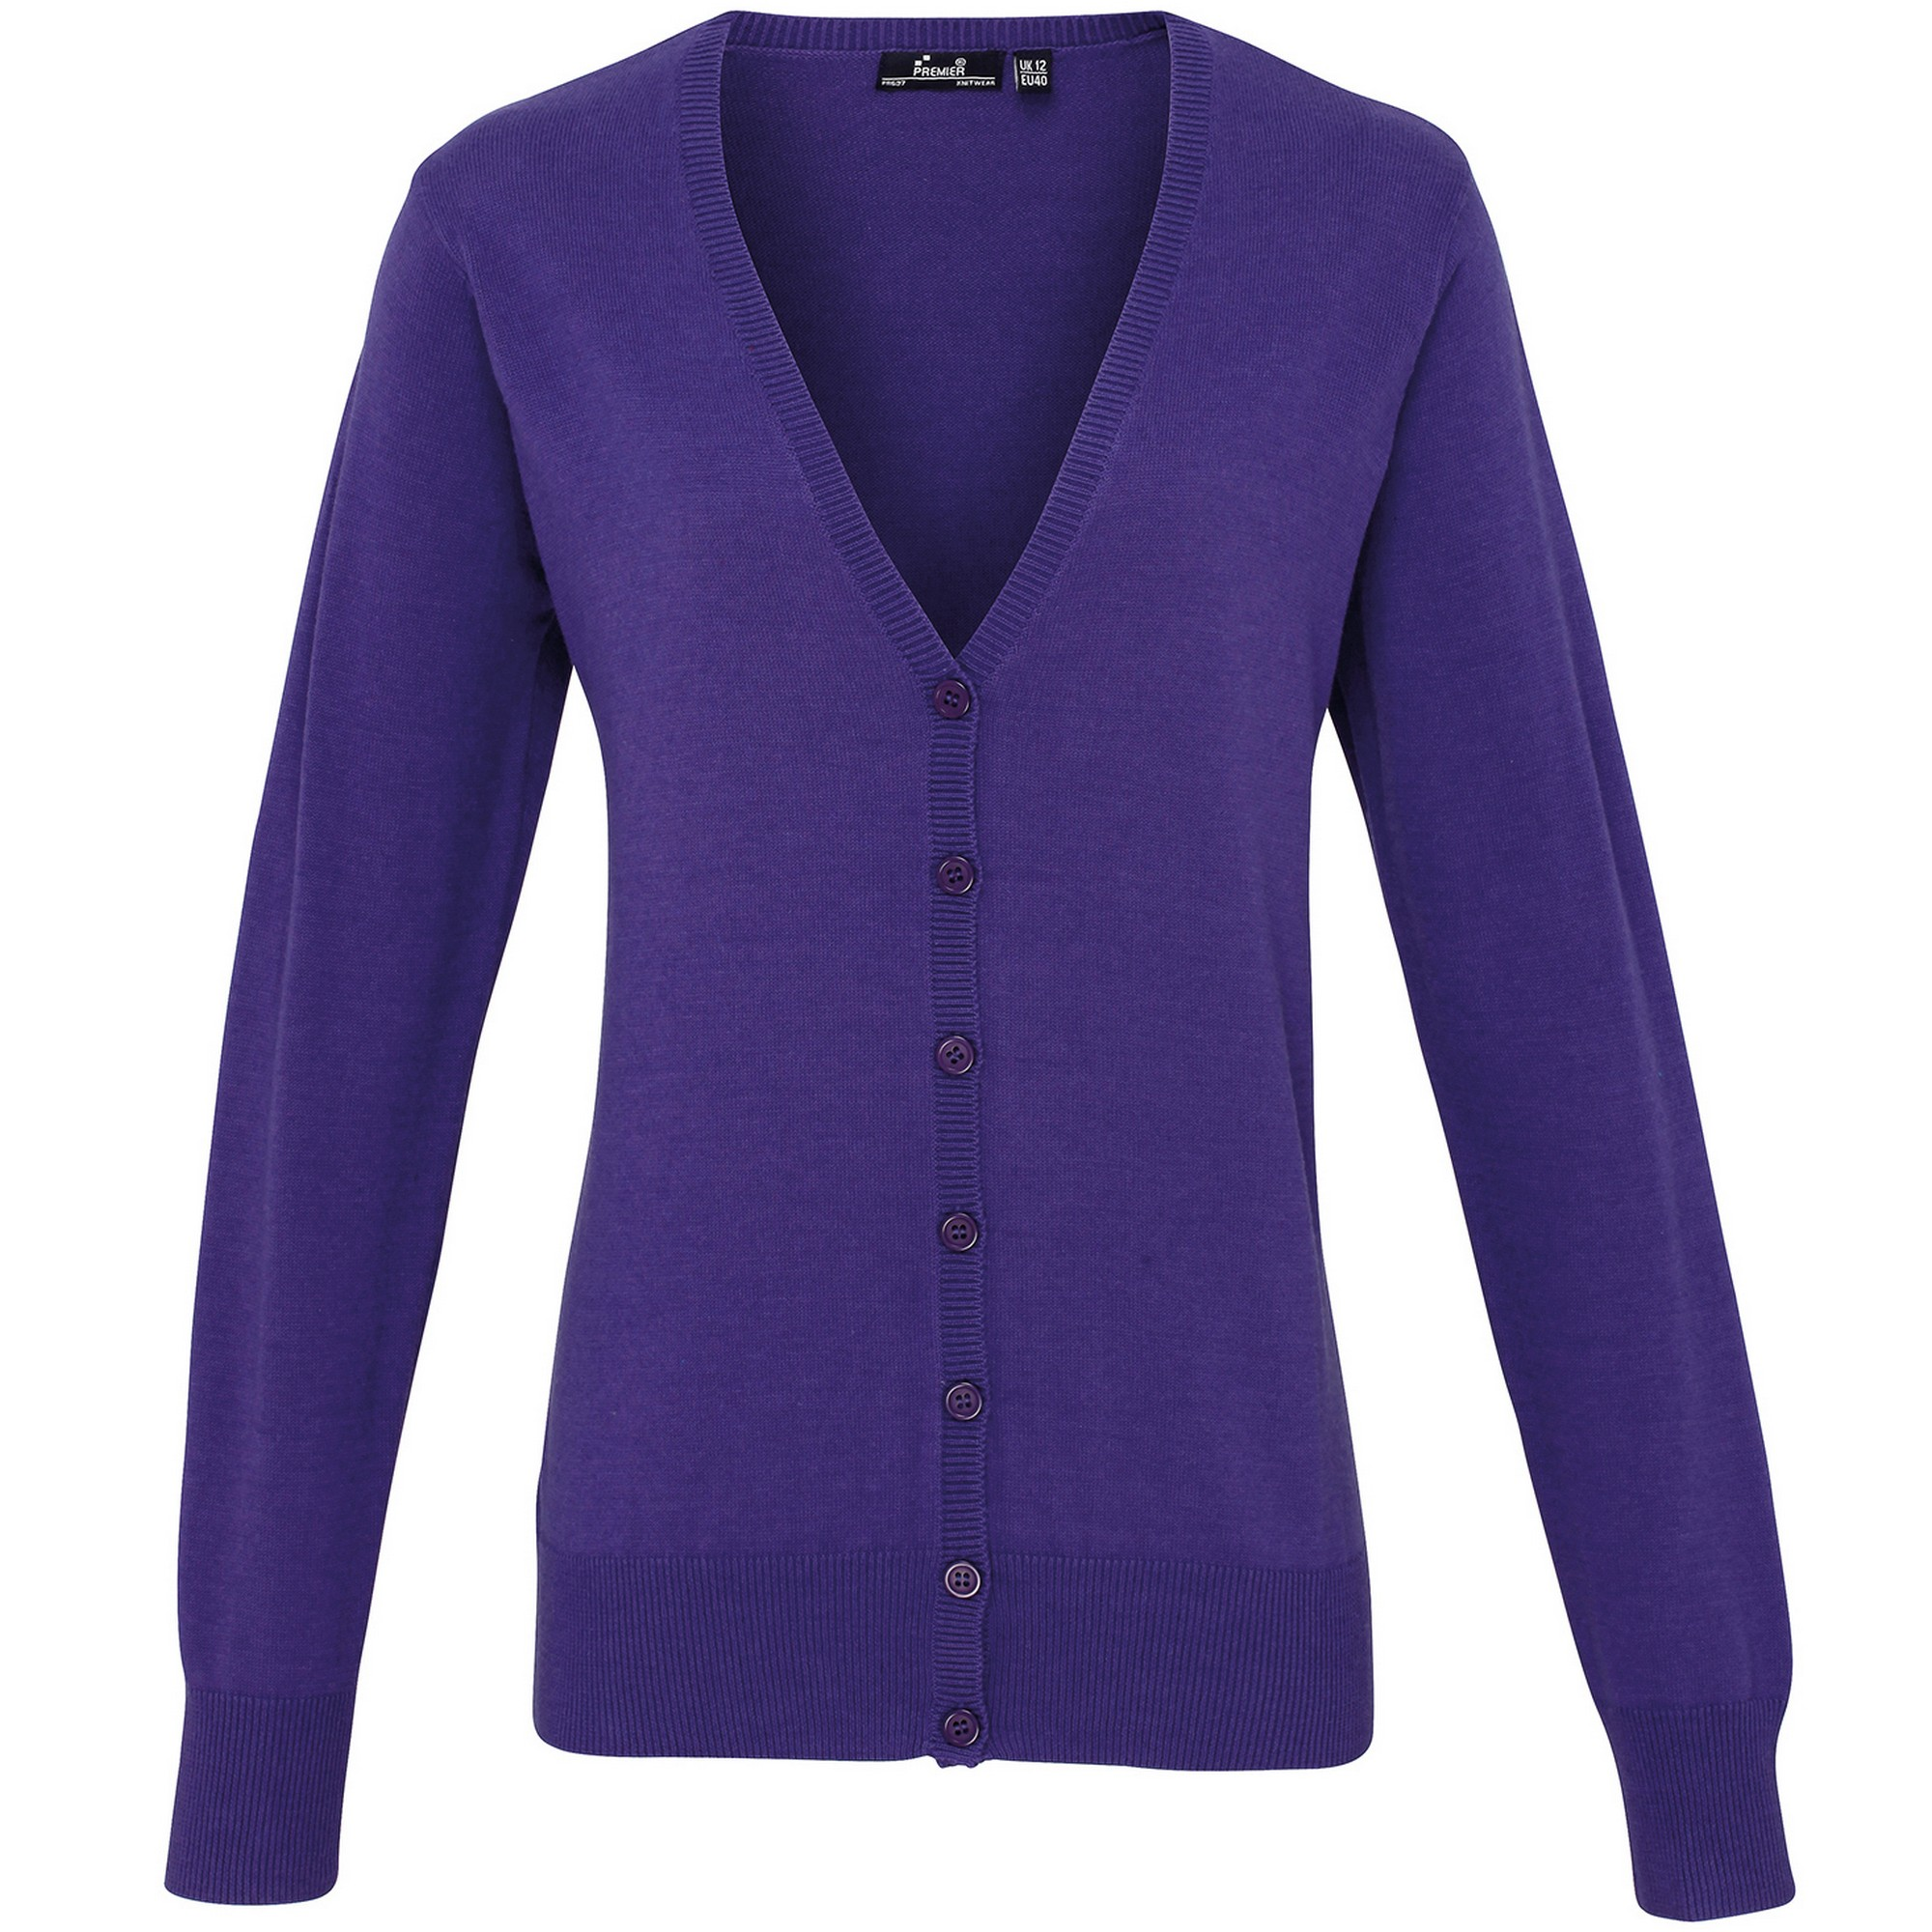 Premier Womens/Ladies Button Through Long Sleeve V-neck Knitted Cardigan (22) (Purple)